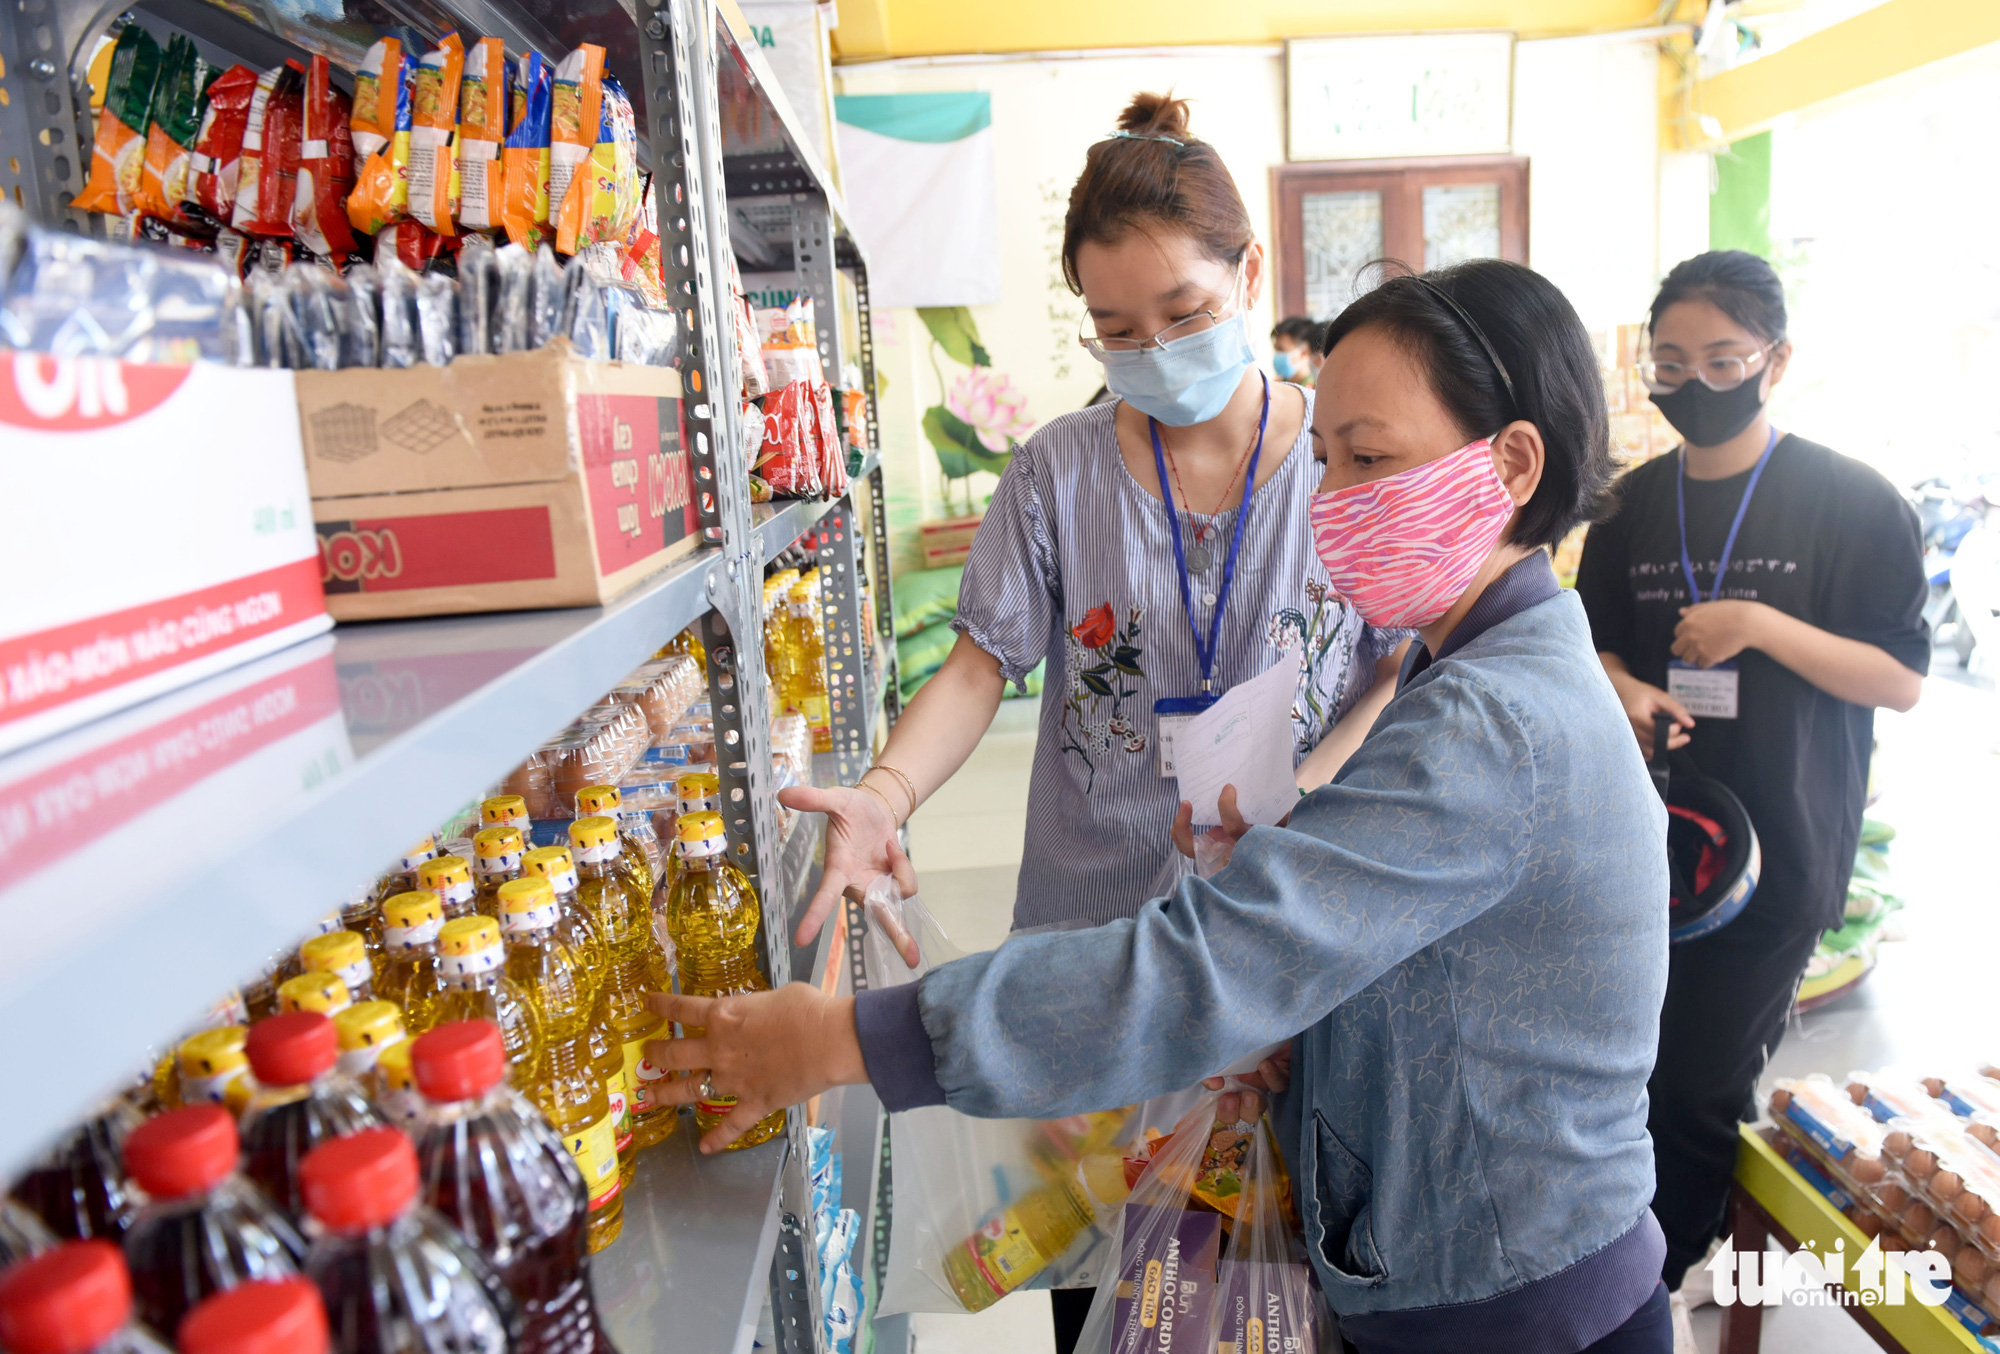 Customers in need get access to basic necessities at the 'Zero-VND Happy Supermarket' located at Vinh Nghiem Pagoda in District 3, Ho Chi Minh City, Vietnam. Photo: Duyen Phan / Tuoi Tre